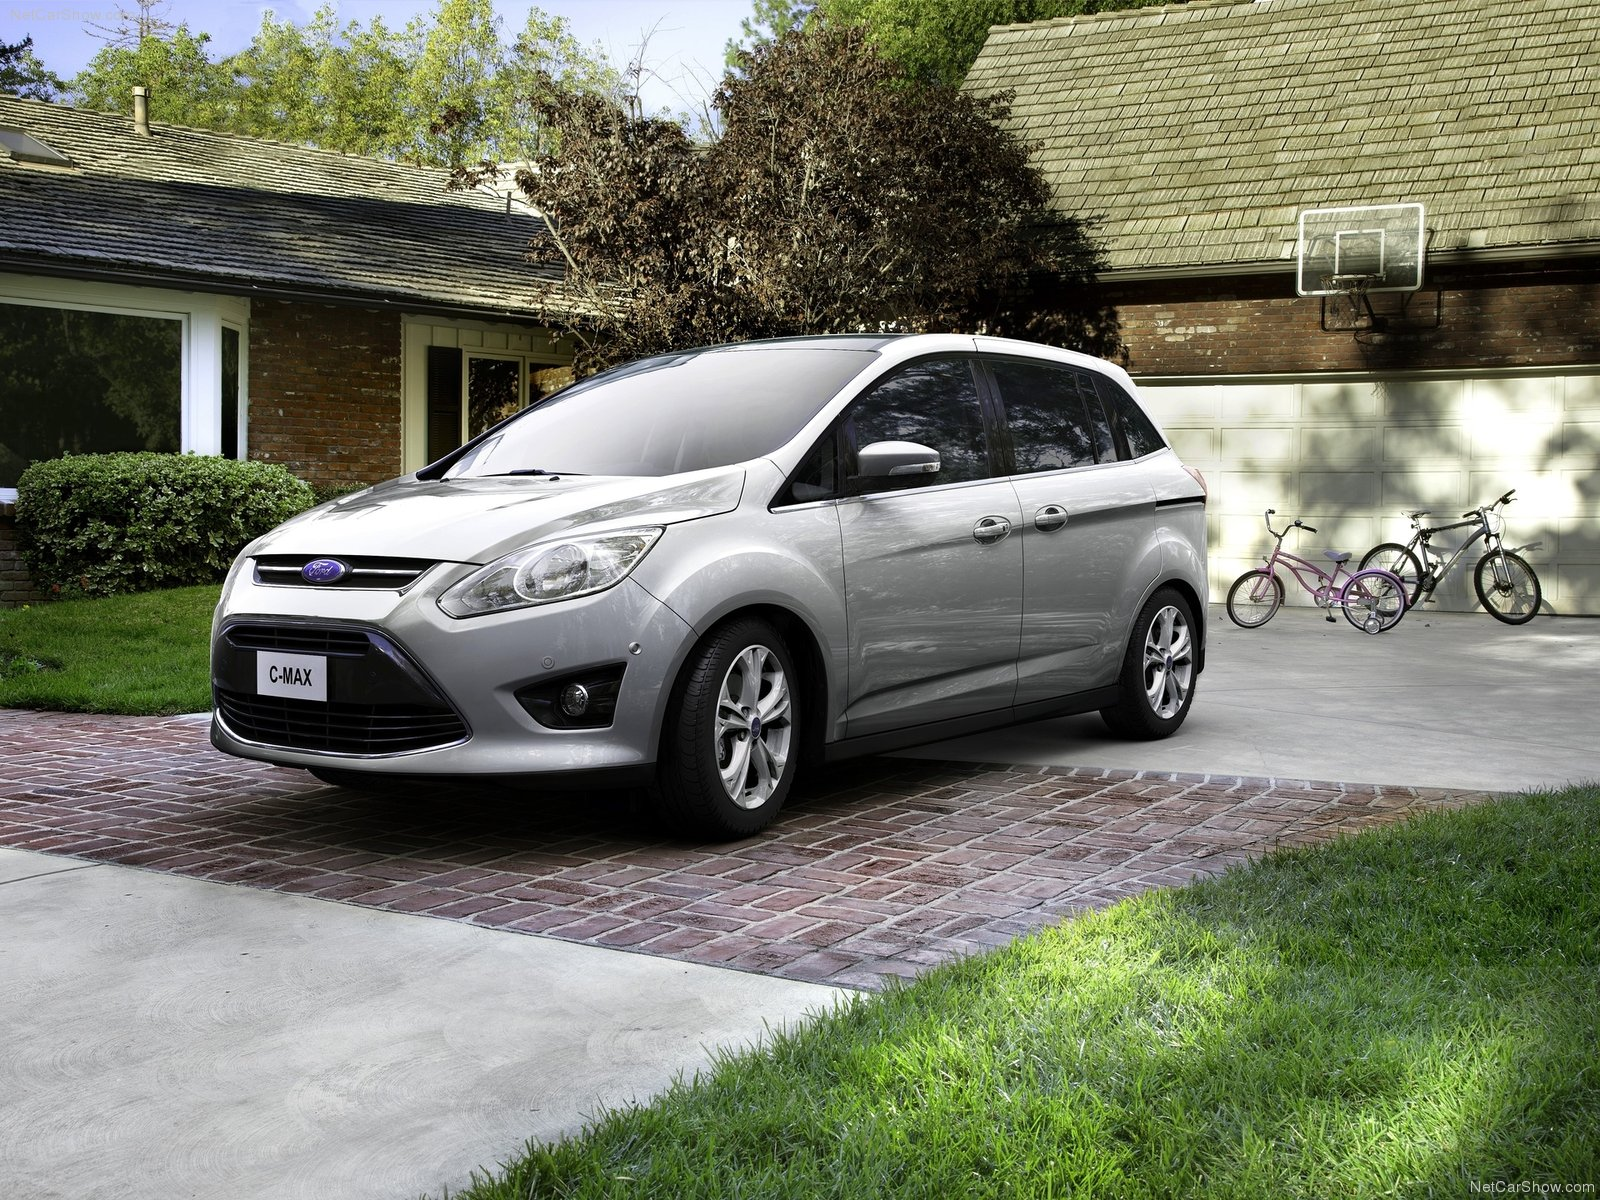 ford focus c max photos photogallery with 27 pics. Black Bedroom Furniture Sets. Home Design Ideas